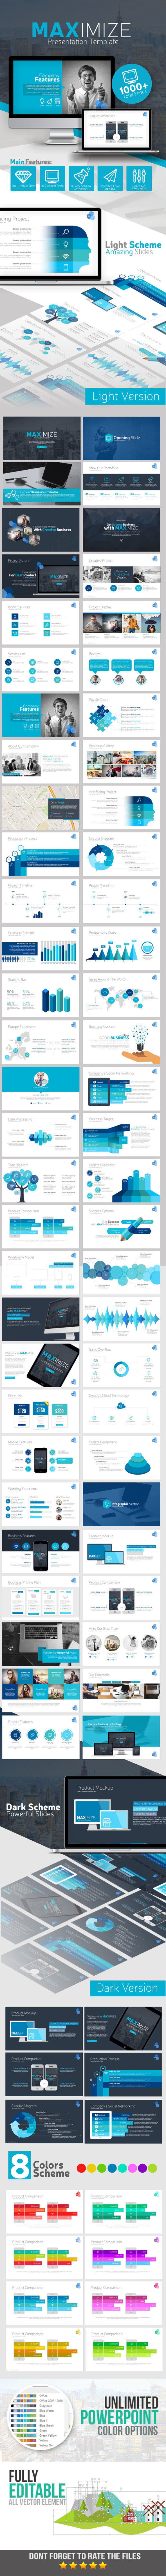 GraphicRiver MAXIMIZE Presentation Template 11563042